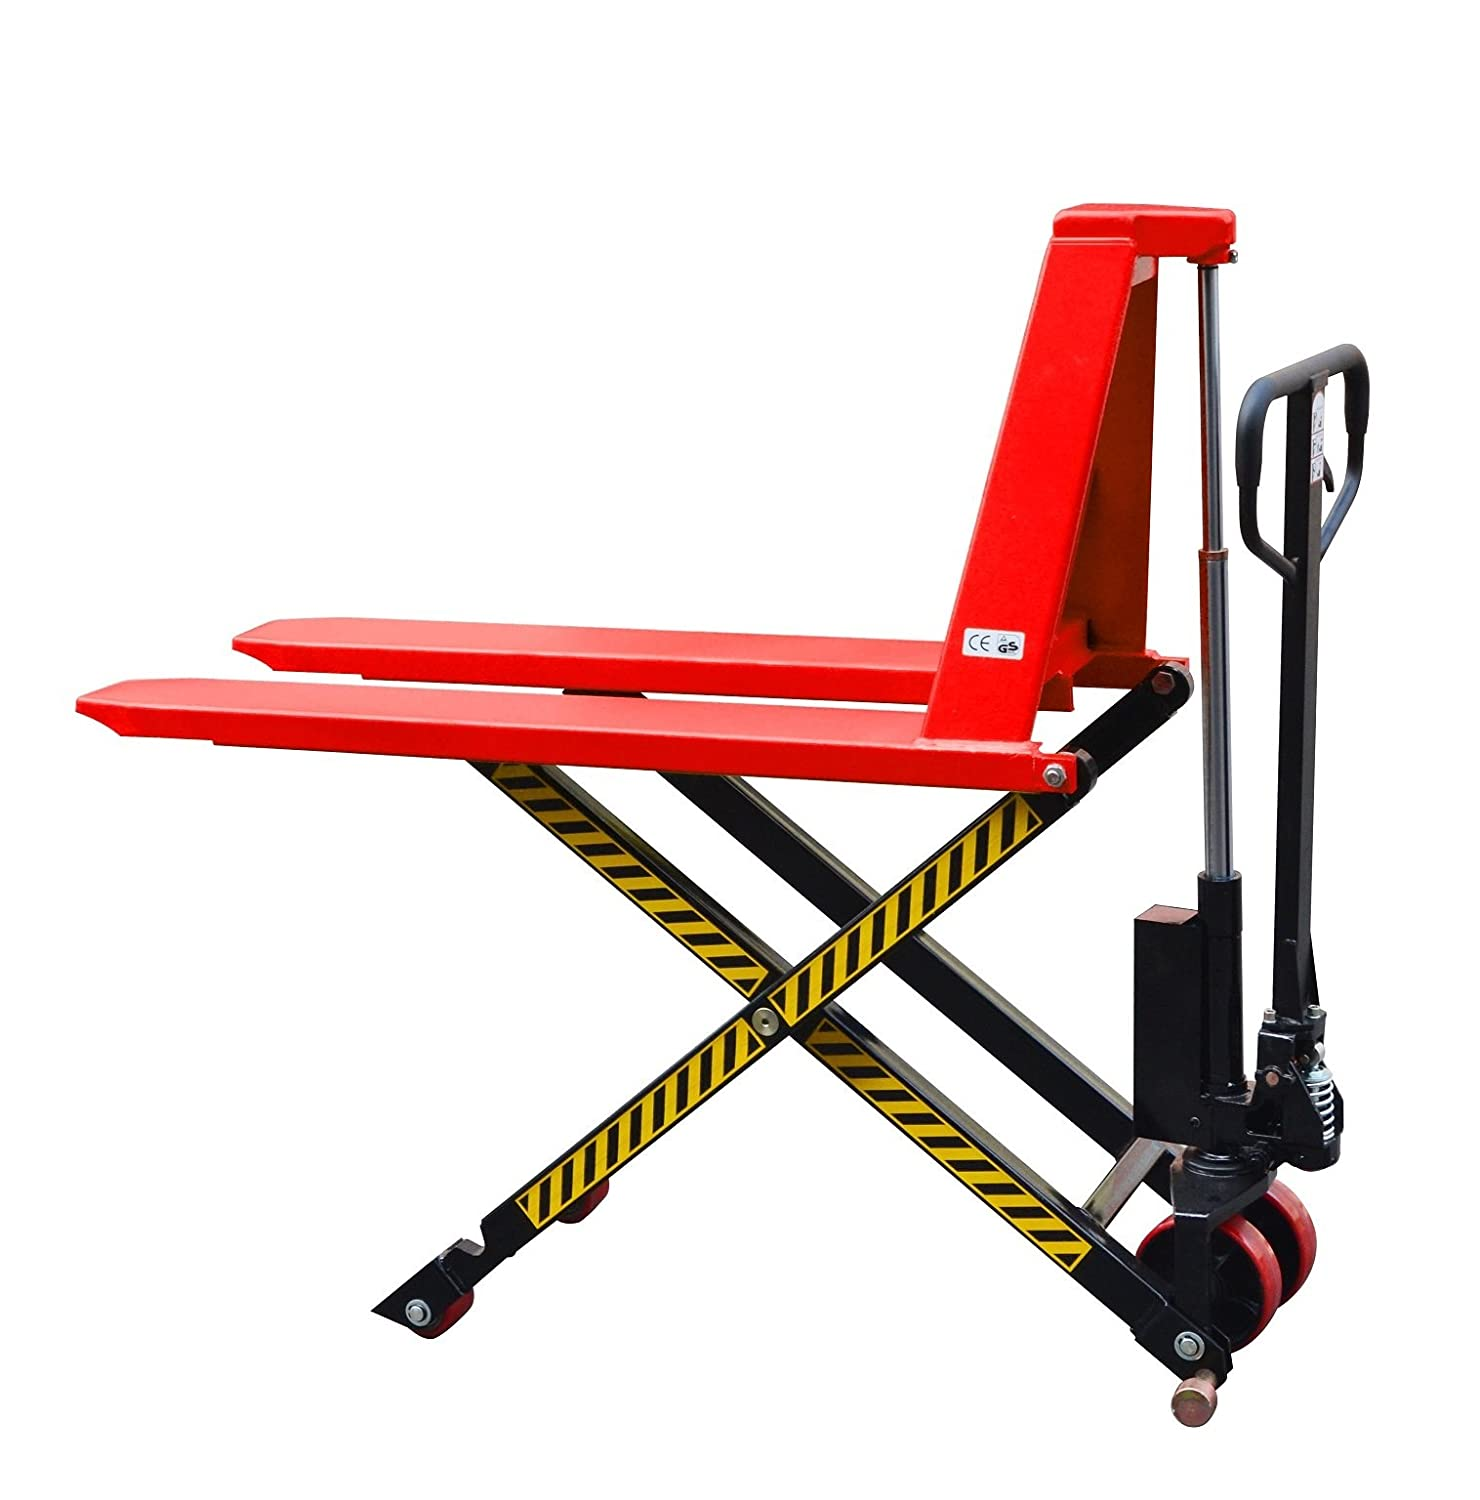 High Lift Scissor Truck, Manual